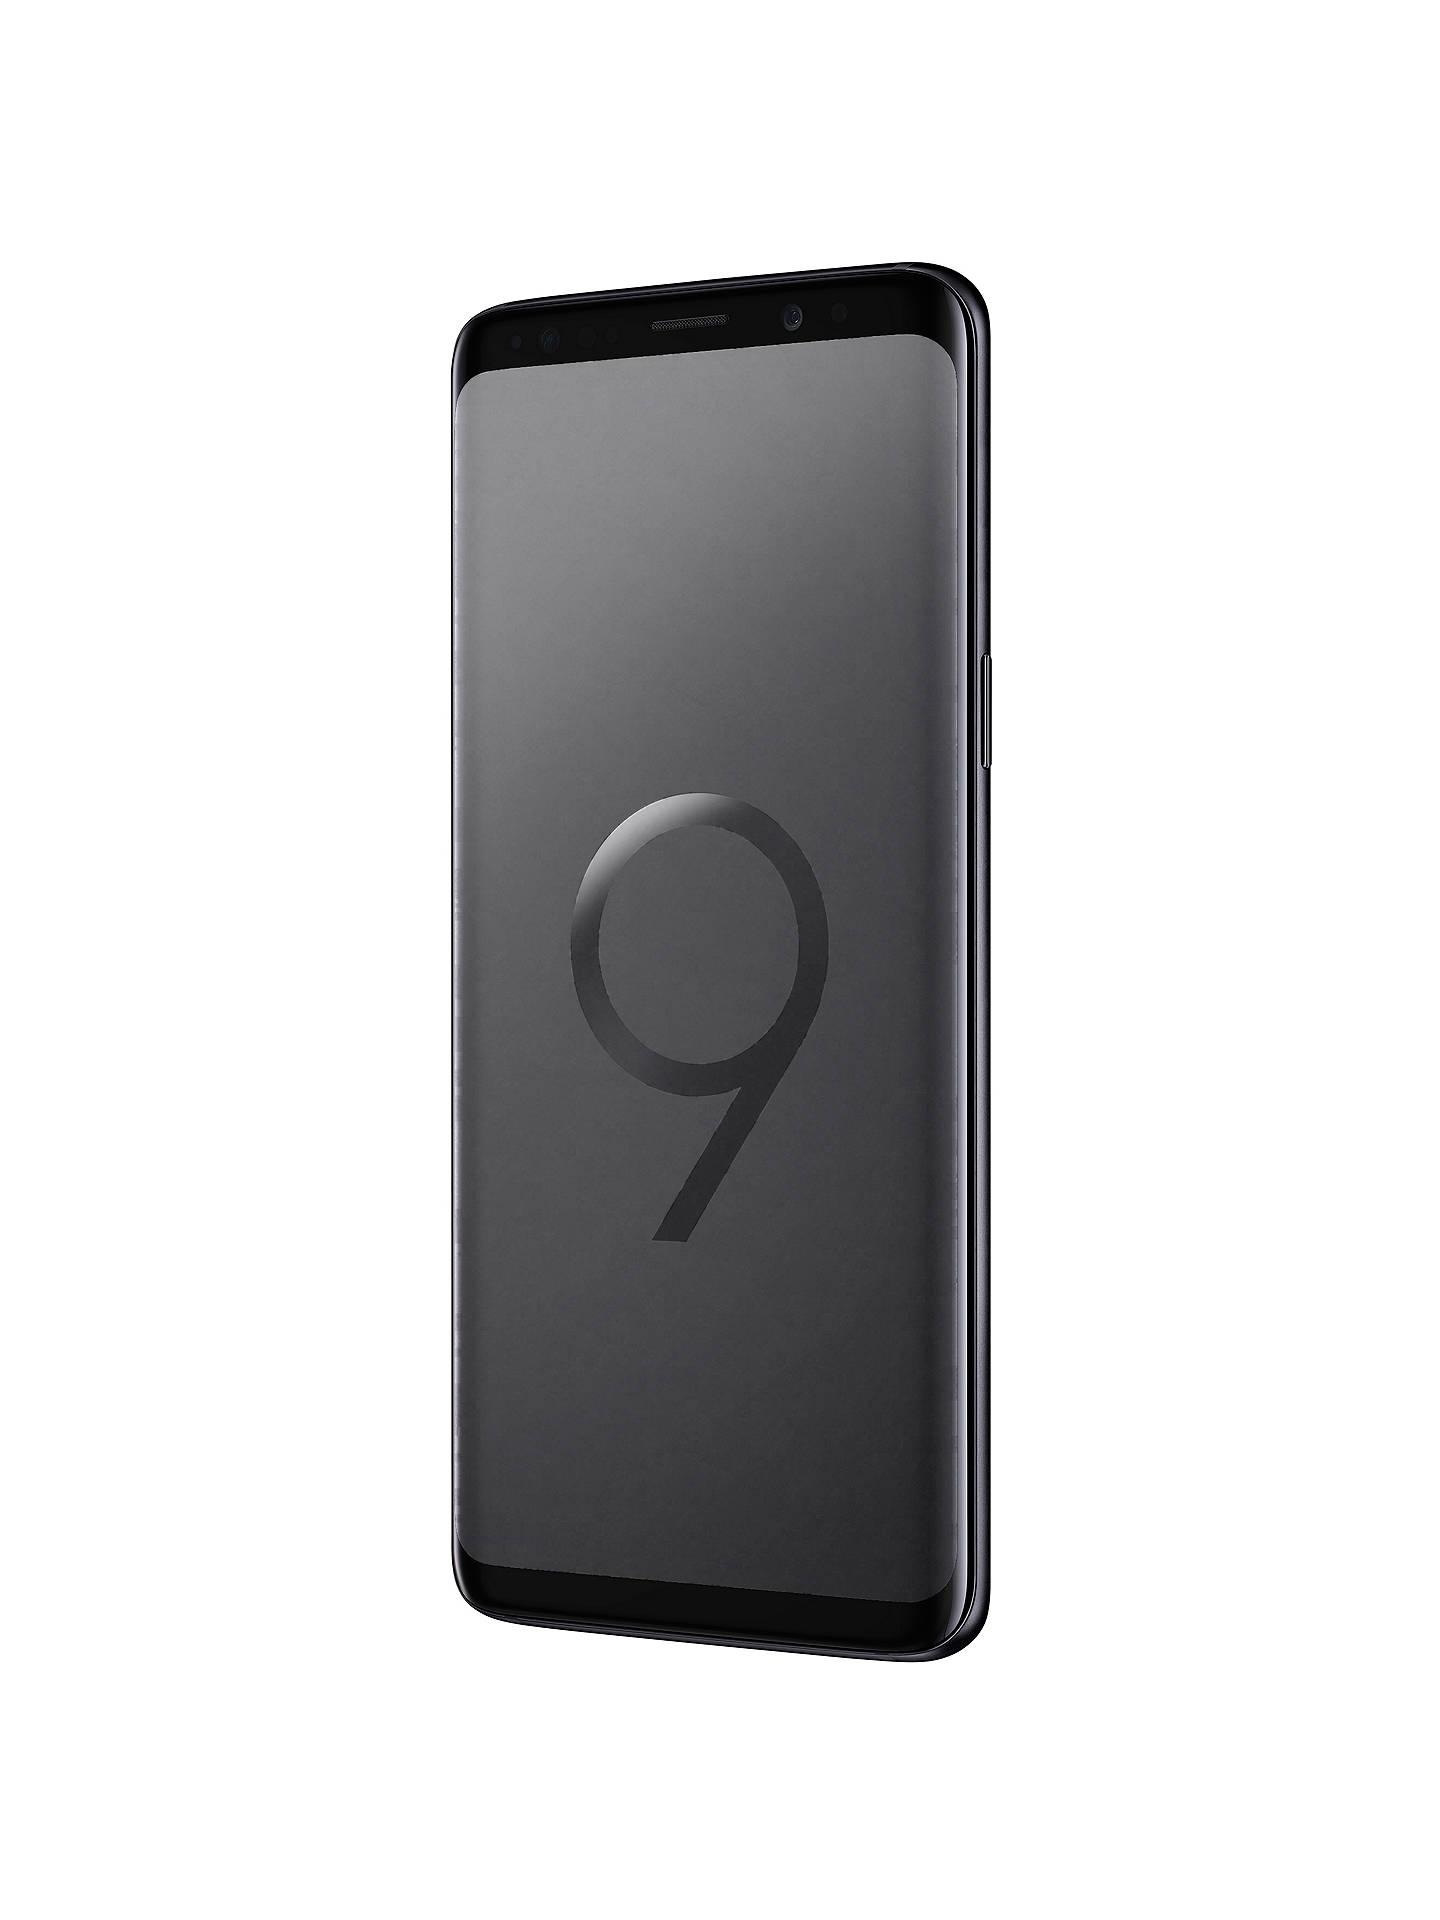 "Buy Samsung Galaxy S9 Smartphone, Android, 5.8"", 4G LTE, SIM Free, 64GB, Midnight Black Online at johnlewis.com"